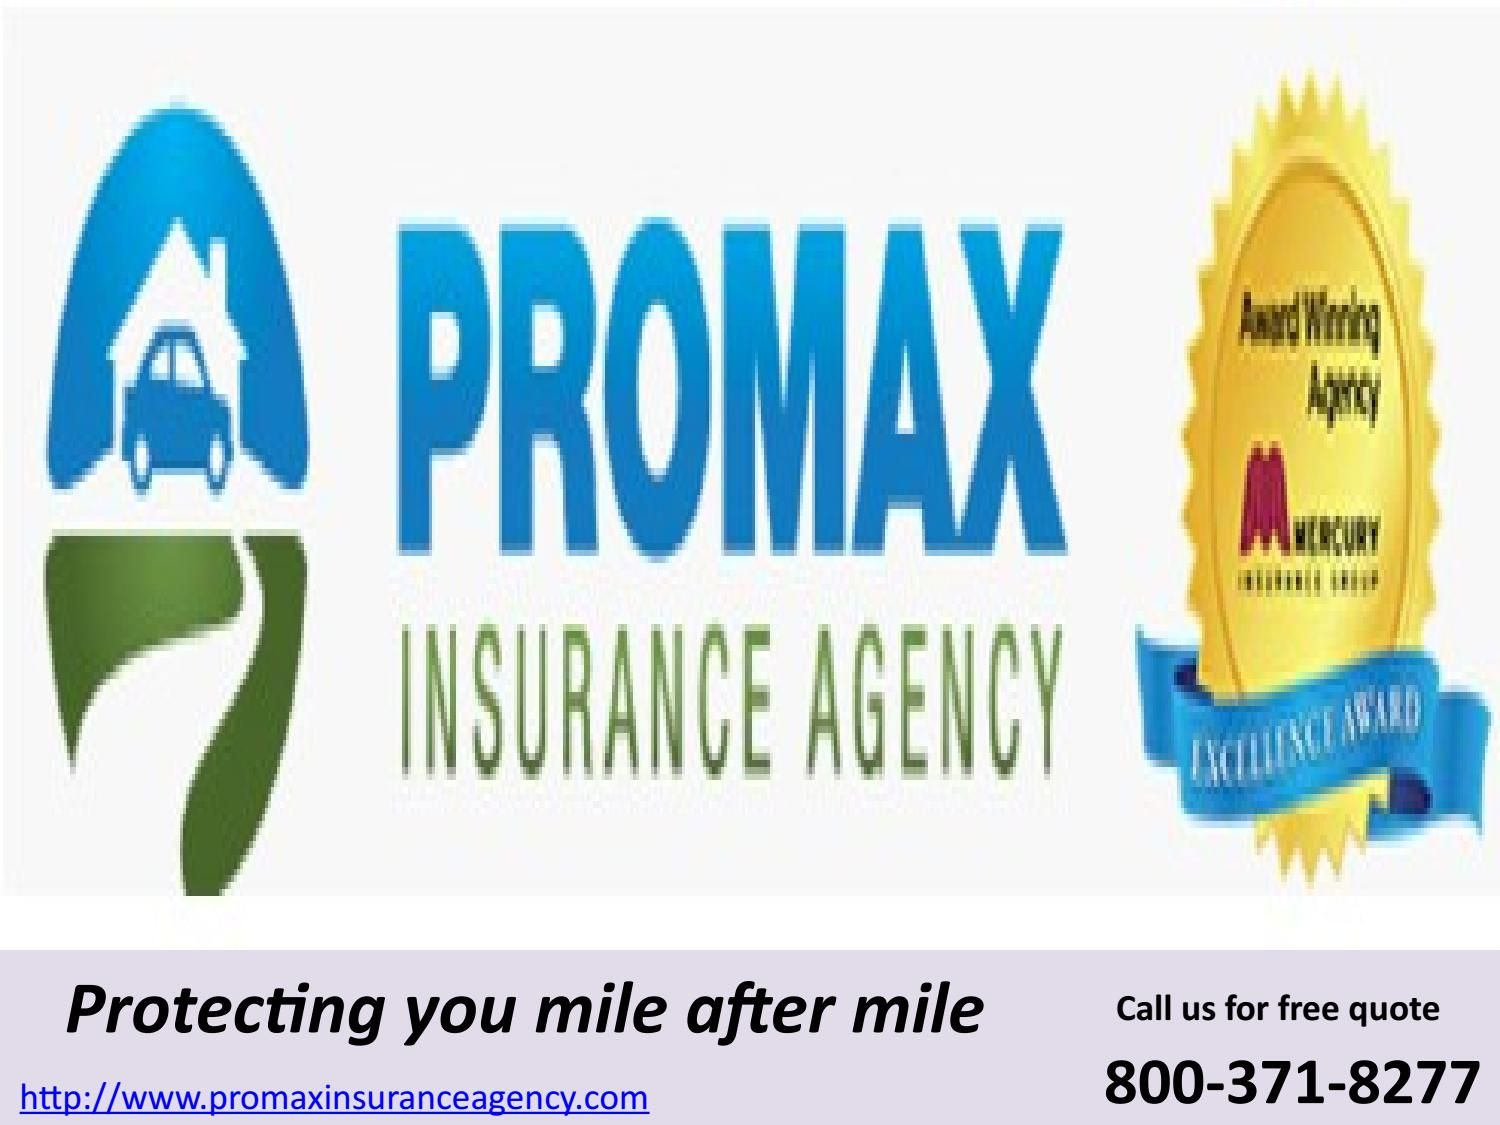 Low cost auto insurance in california Car insurance, Low